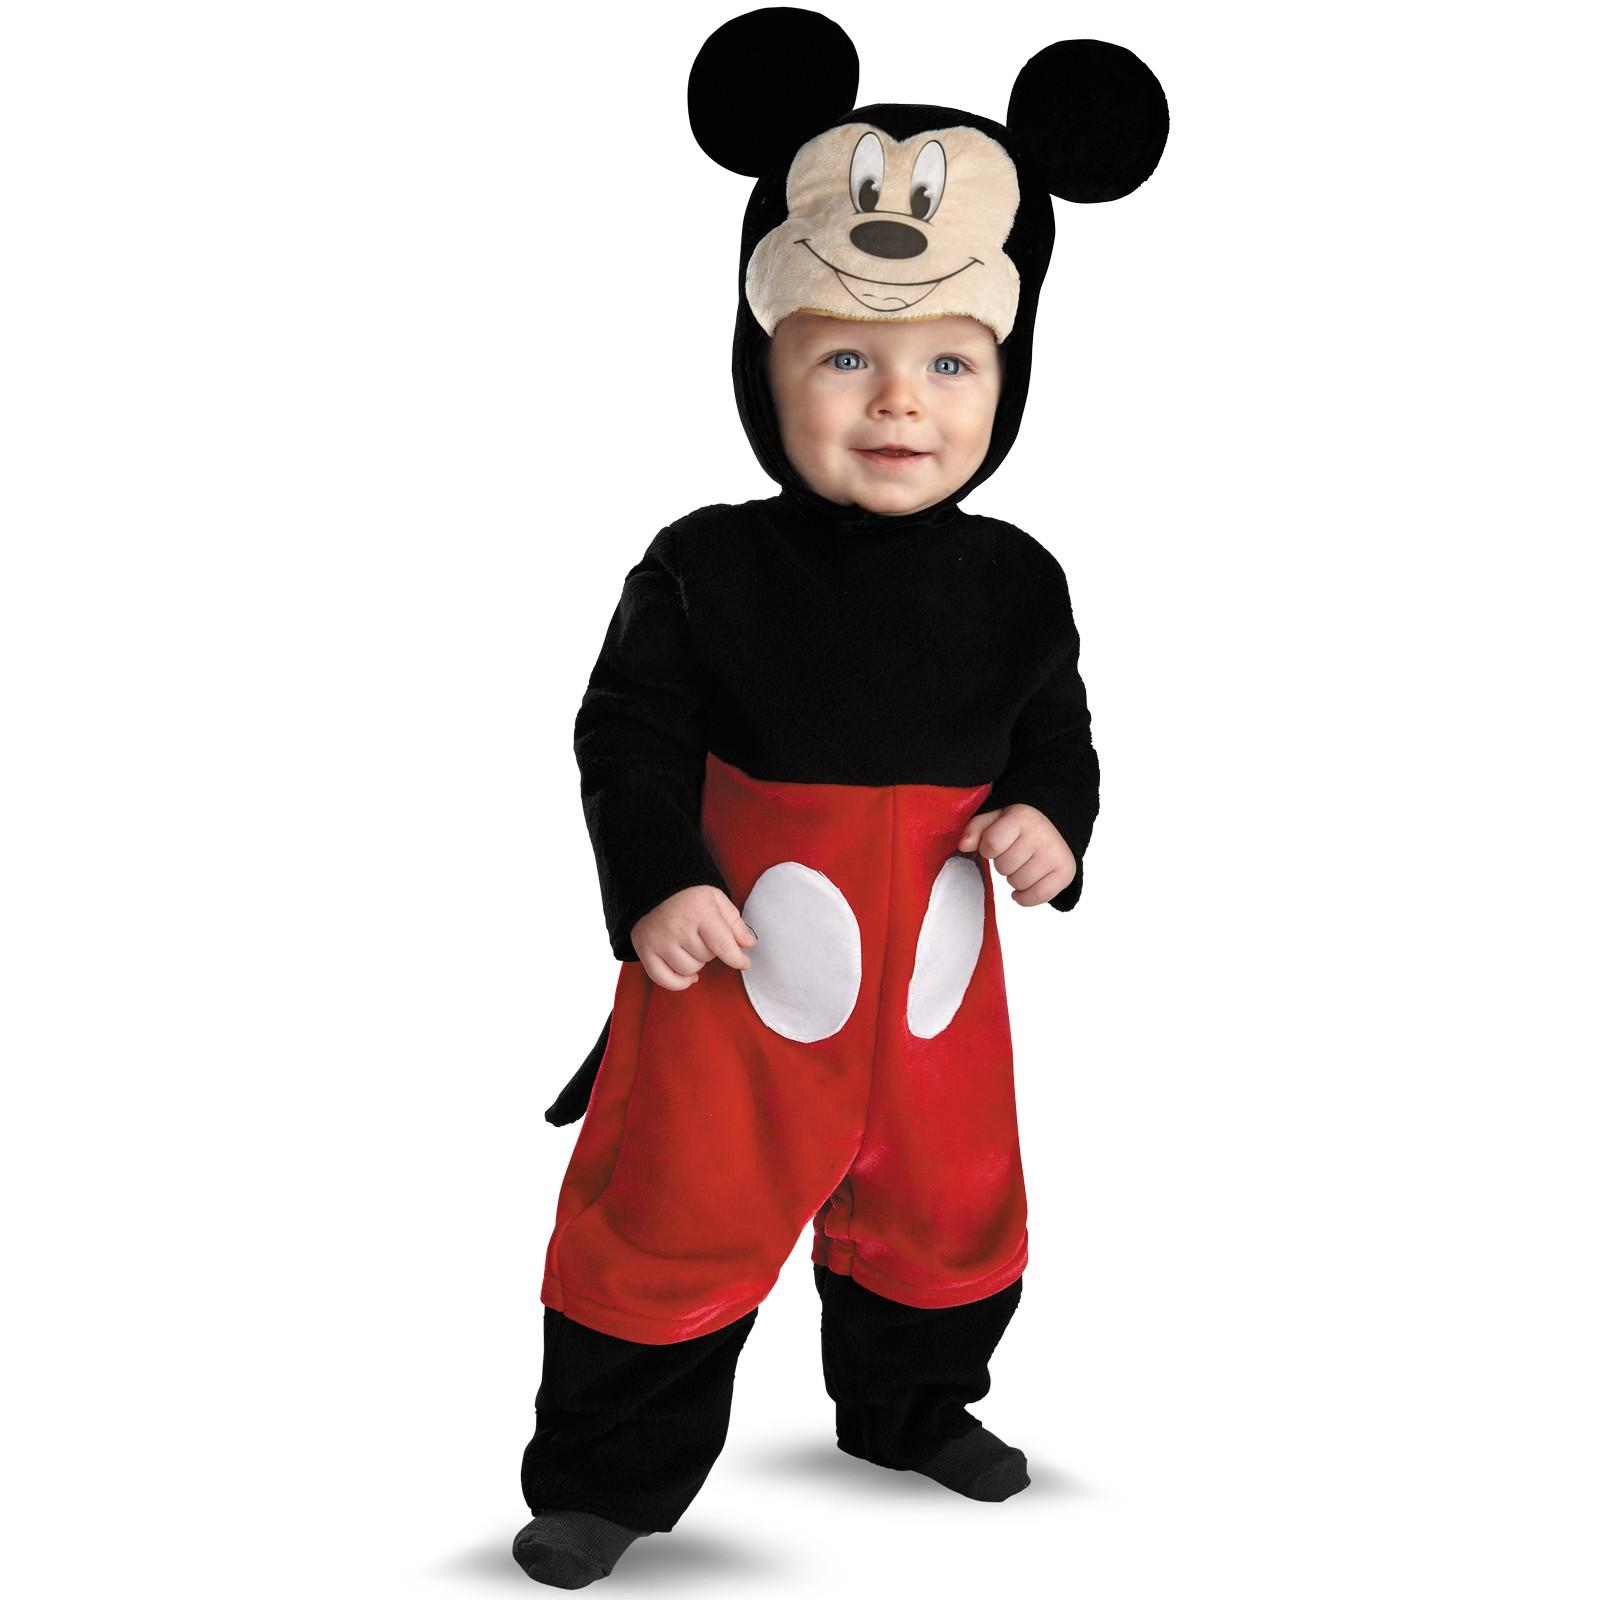 FANCY DRESS FOR HIRE IN CHENNAI, Mobile No.:9884425000 by: OPTIMIZED ...